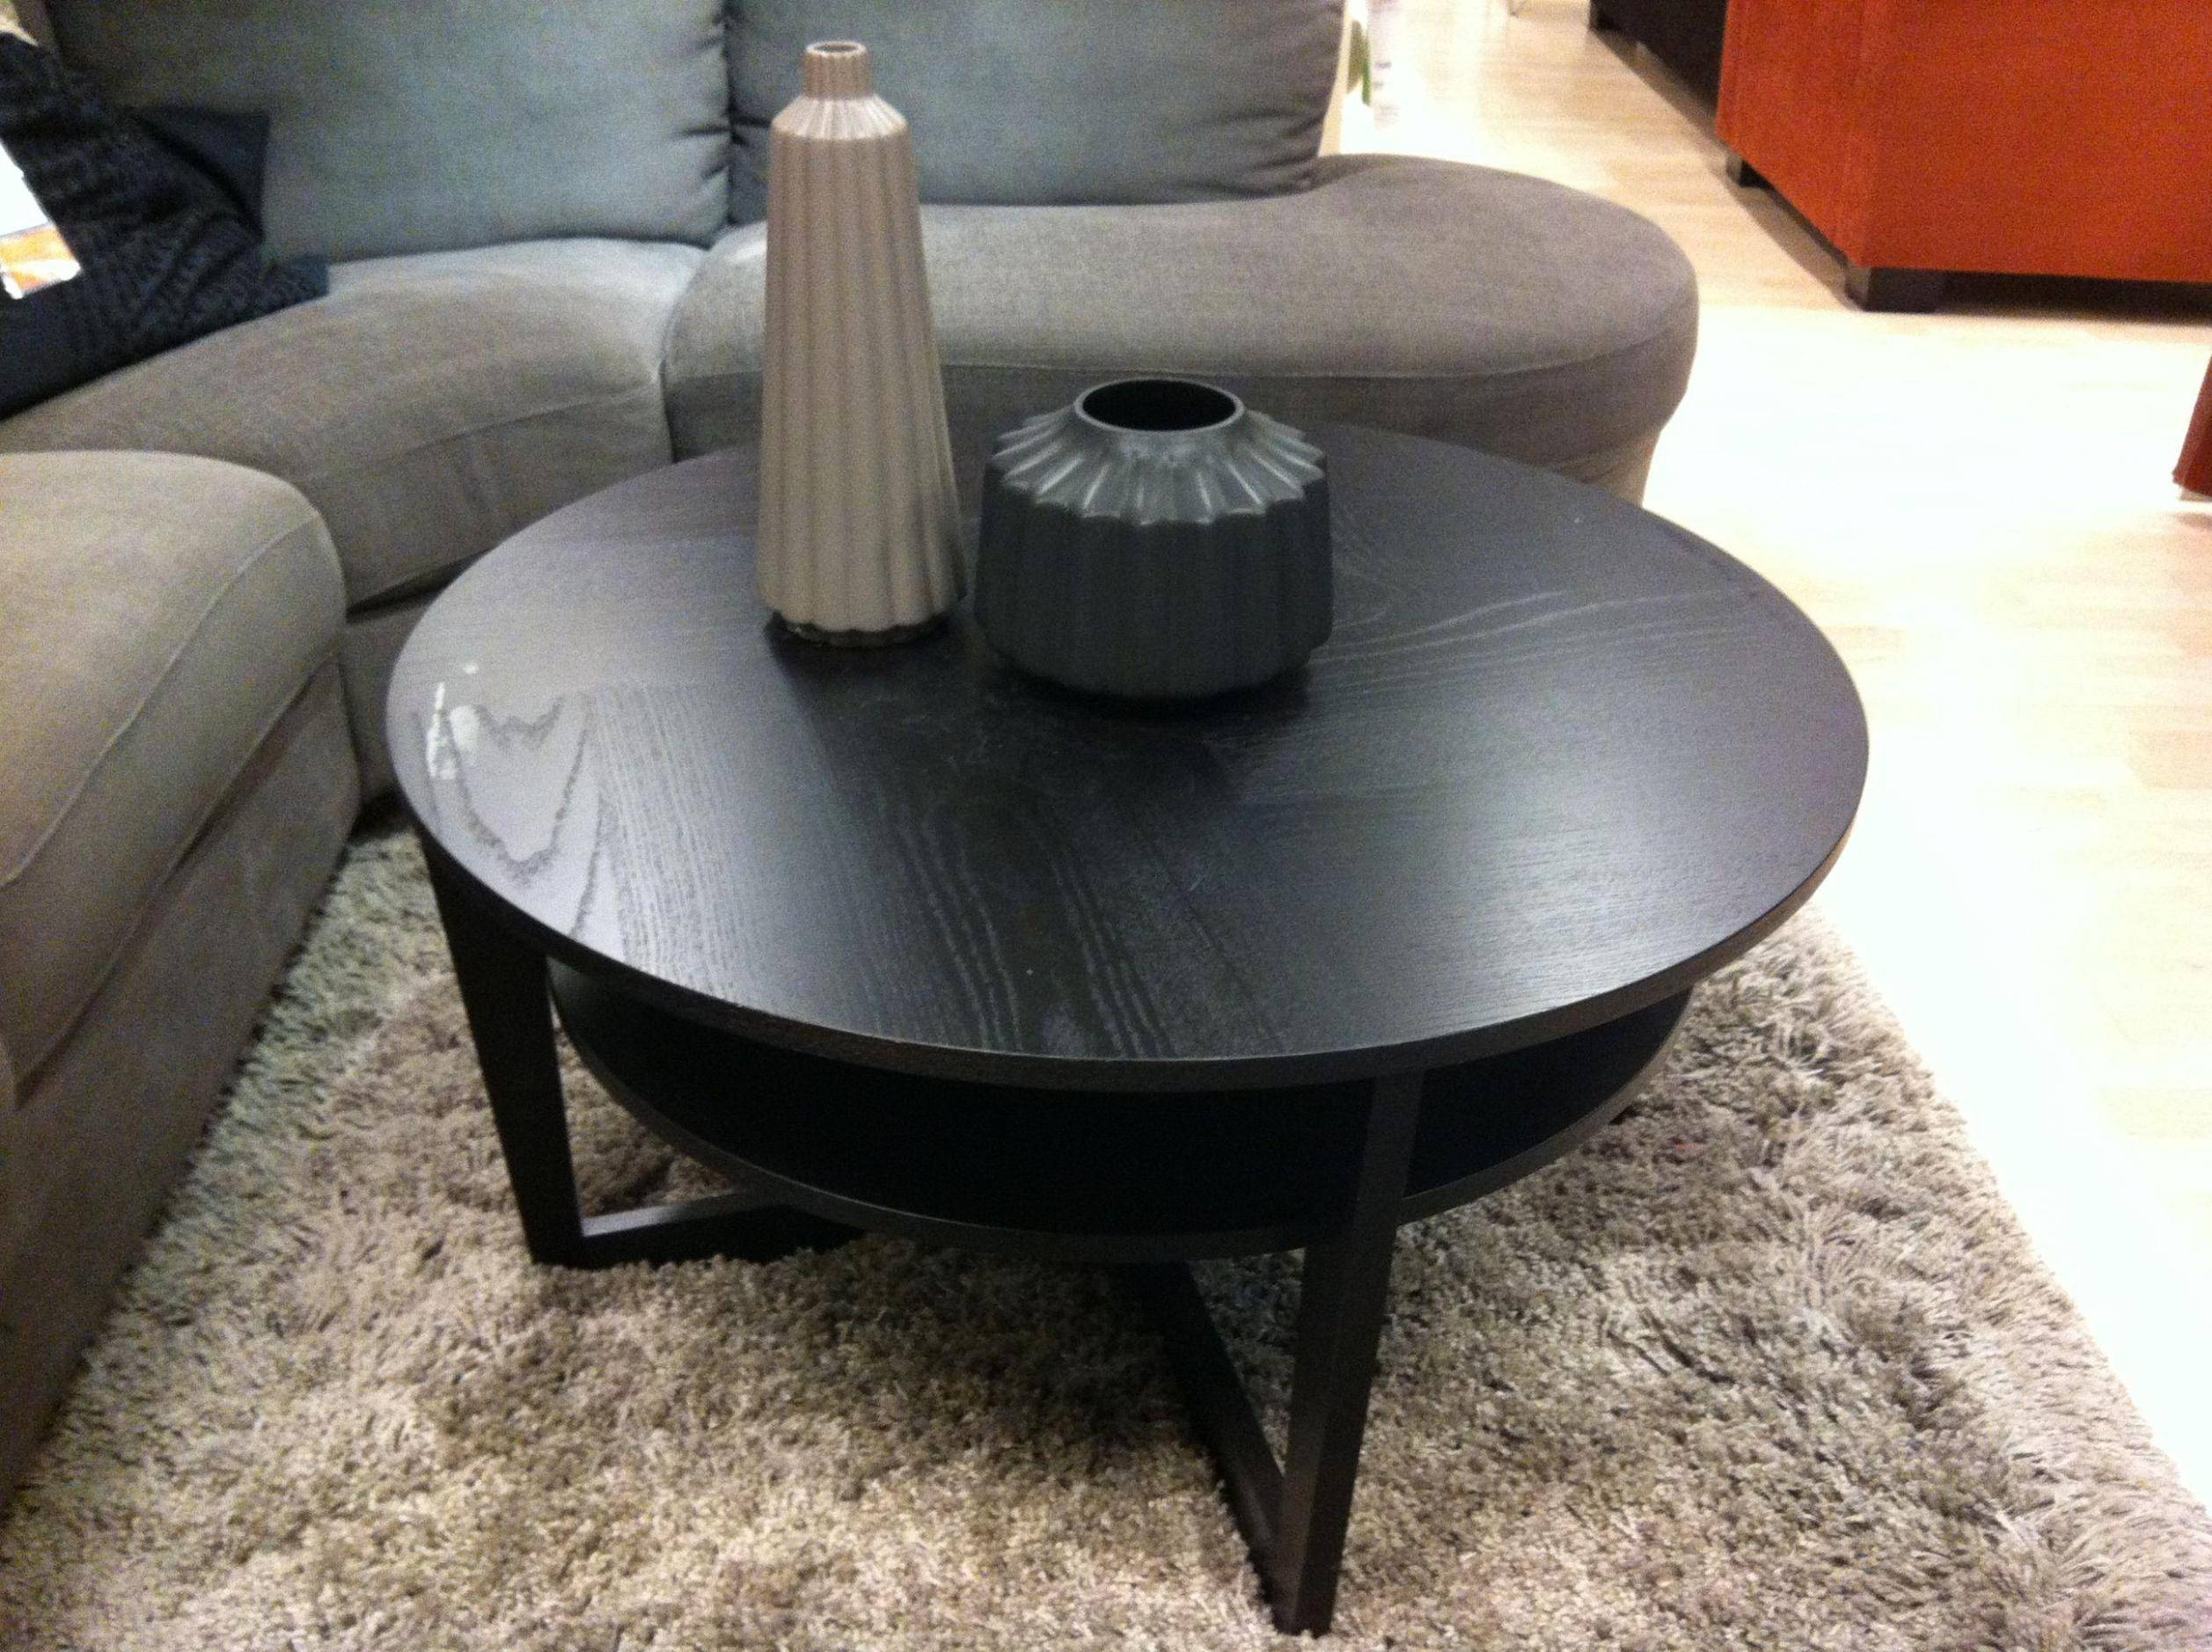 Black Circle Coffee Table : Axiomaticaorg - Jericho Mafjar Project throughout Black Circle Coffee Tables (Image 1 of 30)